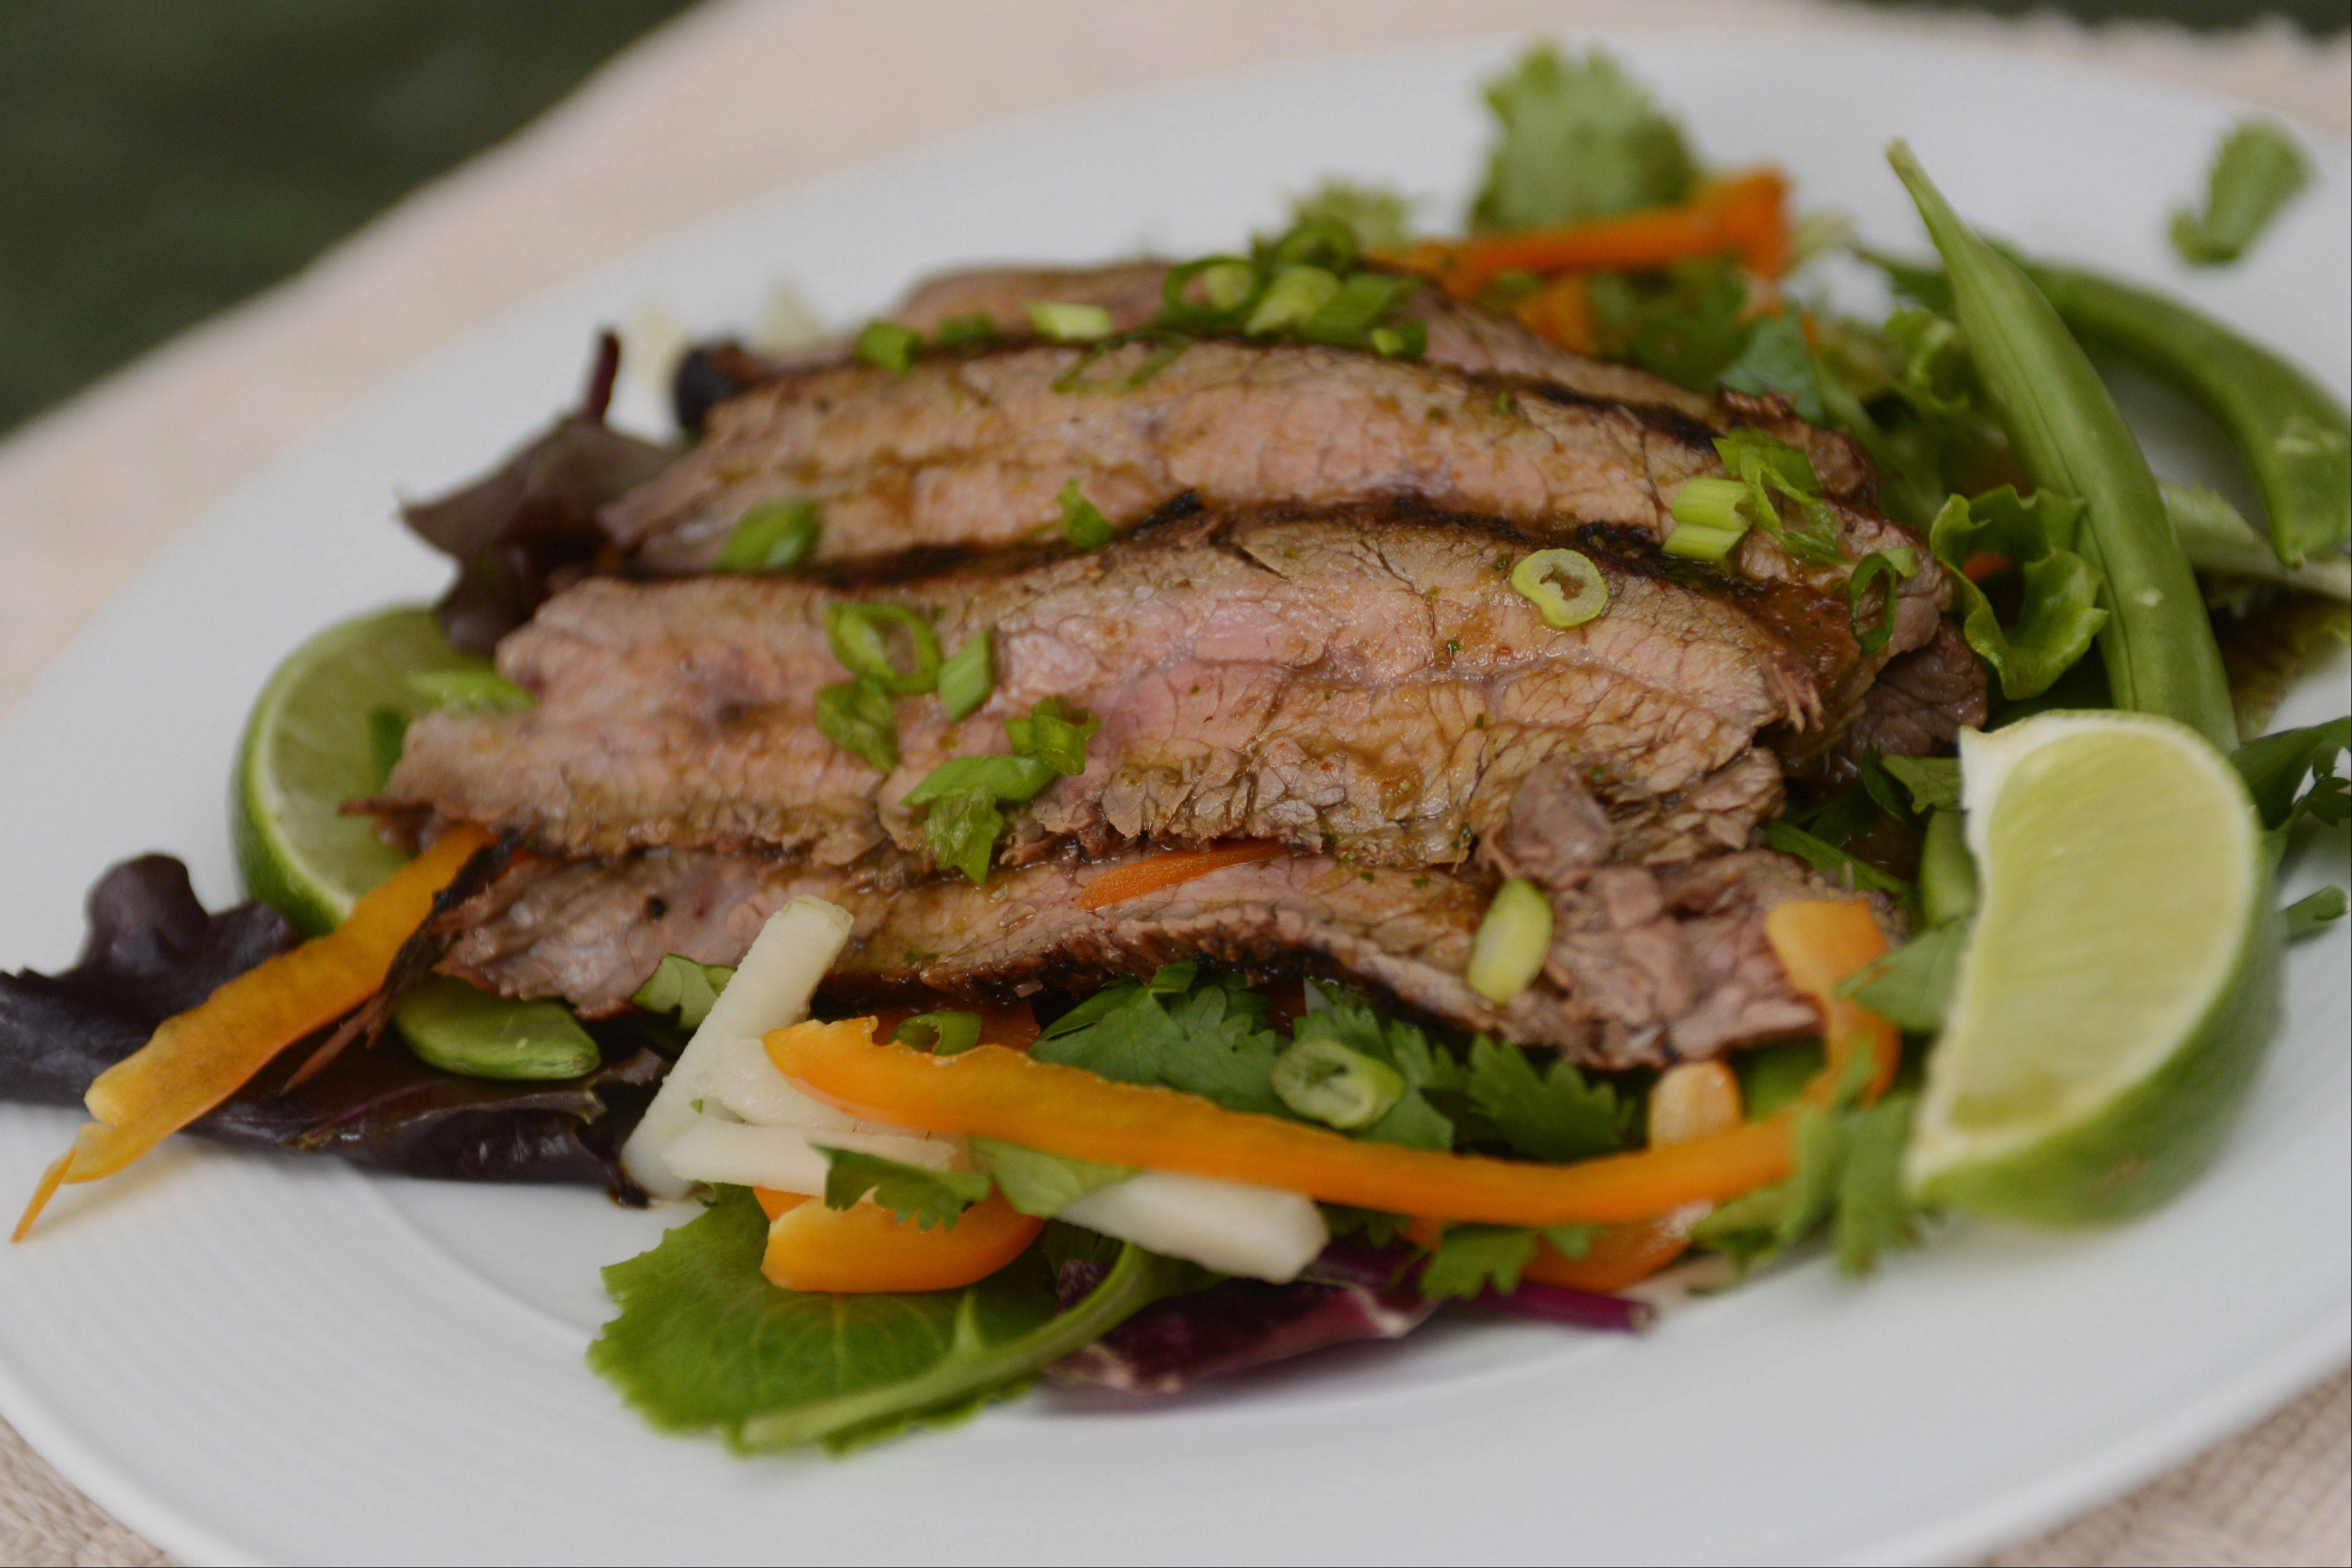 Slices of grilled, marinated flank steak top Ethan Danstrom's Asian-style dinner salad.